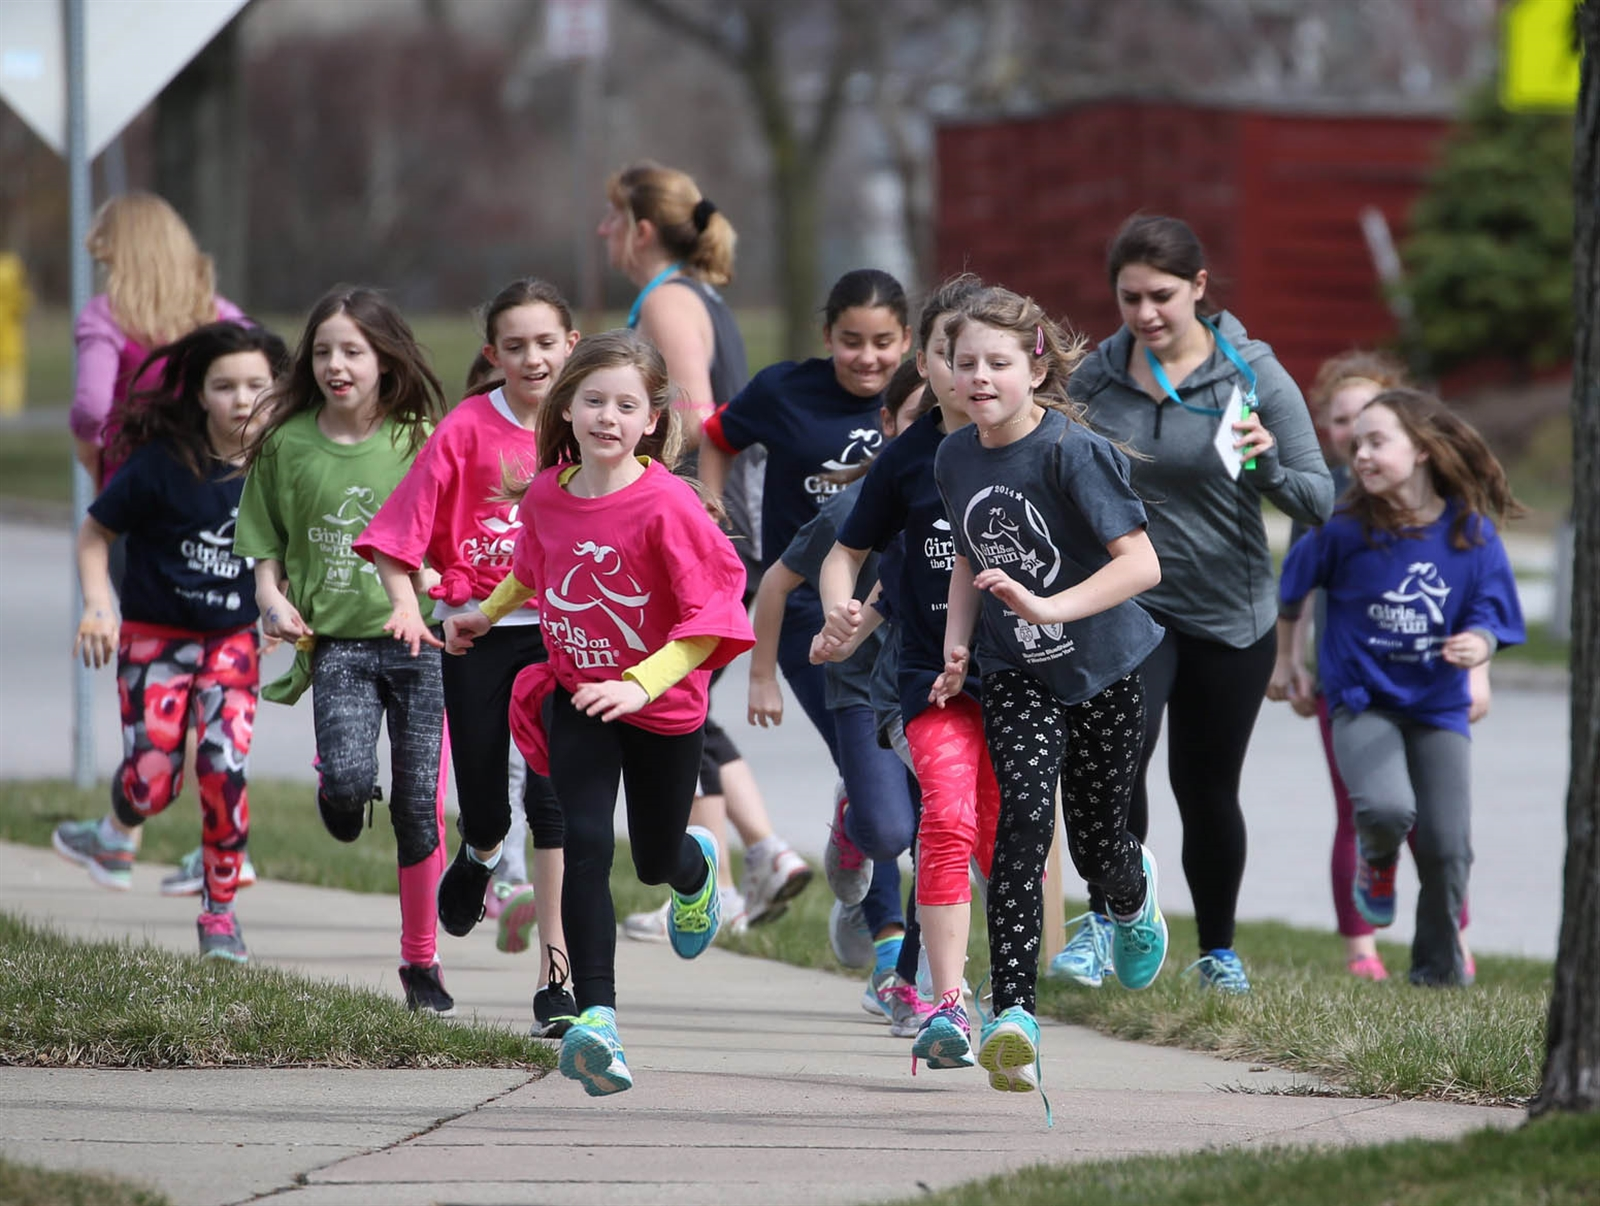 Girls on the Run is a national program which encourages girls to start running.  The curriculum they follow has a strong component in building confidence.  On Monday, April 3, a group from Forest Elementary School in Williamsville prepares for a 5K this month and in another in June.